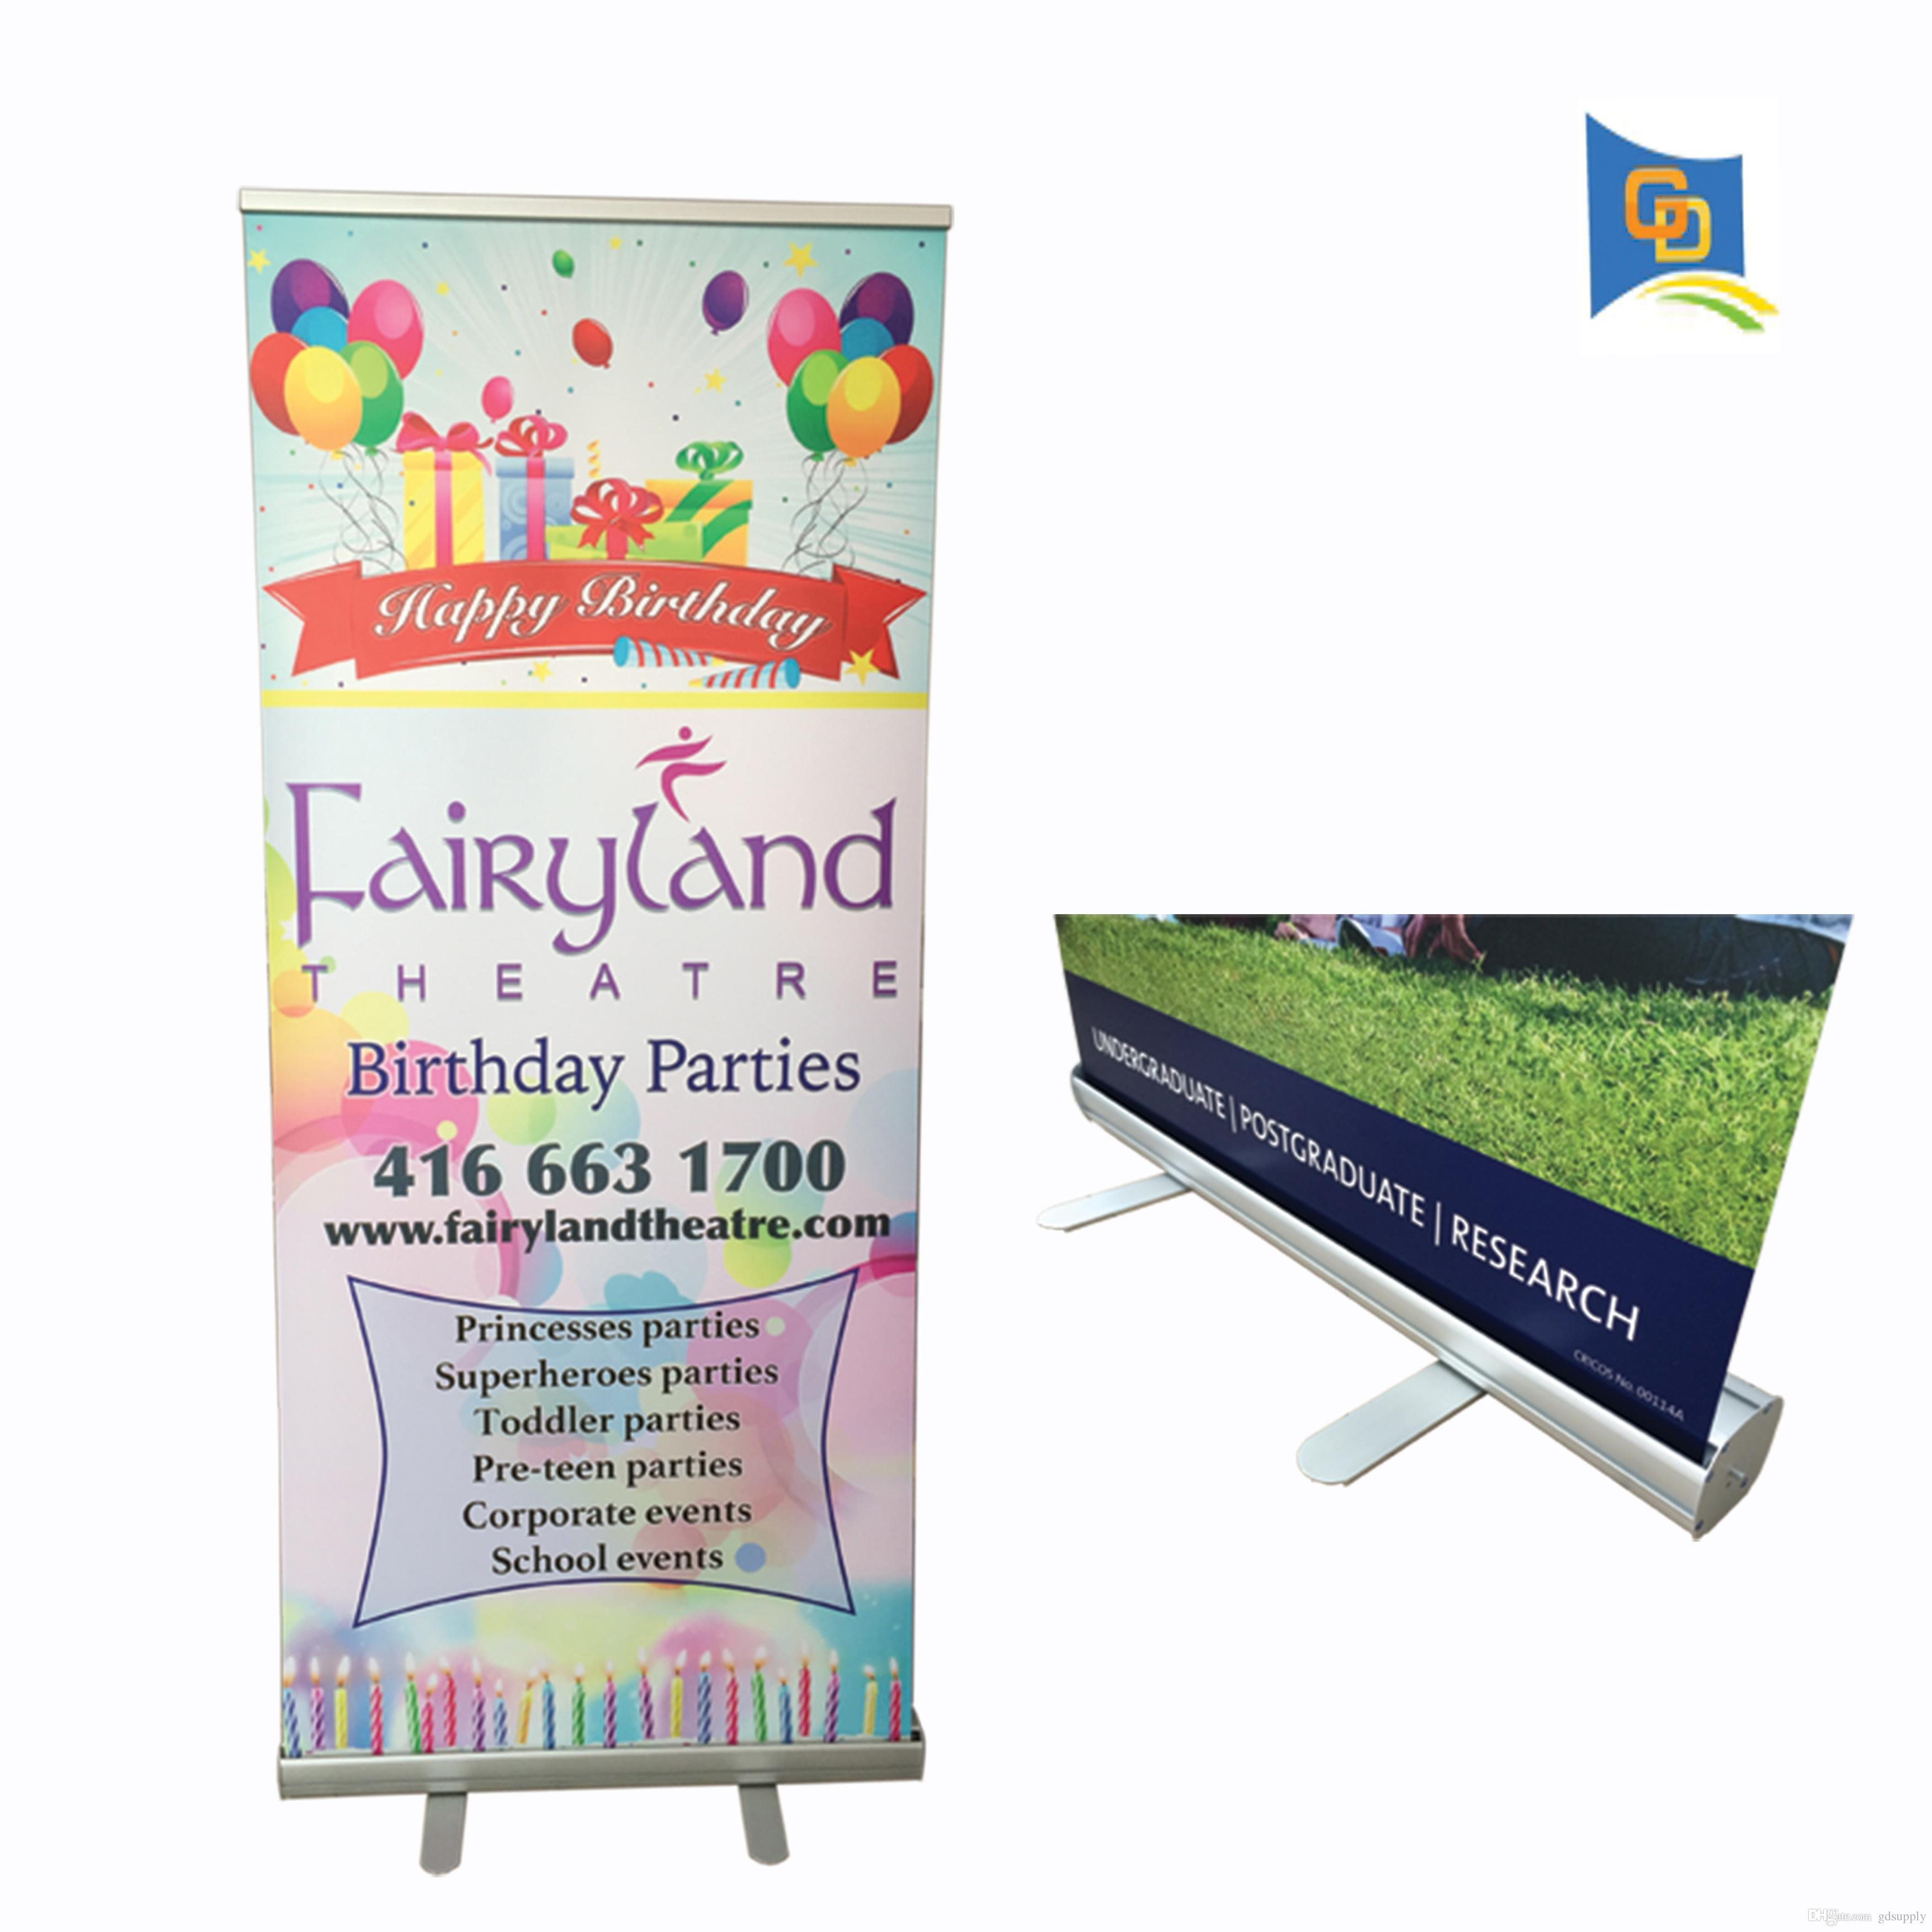 33 46*78 74inch High-quality Thicker Aluminum Retractable Roll Up Display  Banner Stand with Graphic for Trade Show Advertising